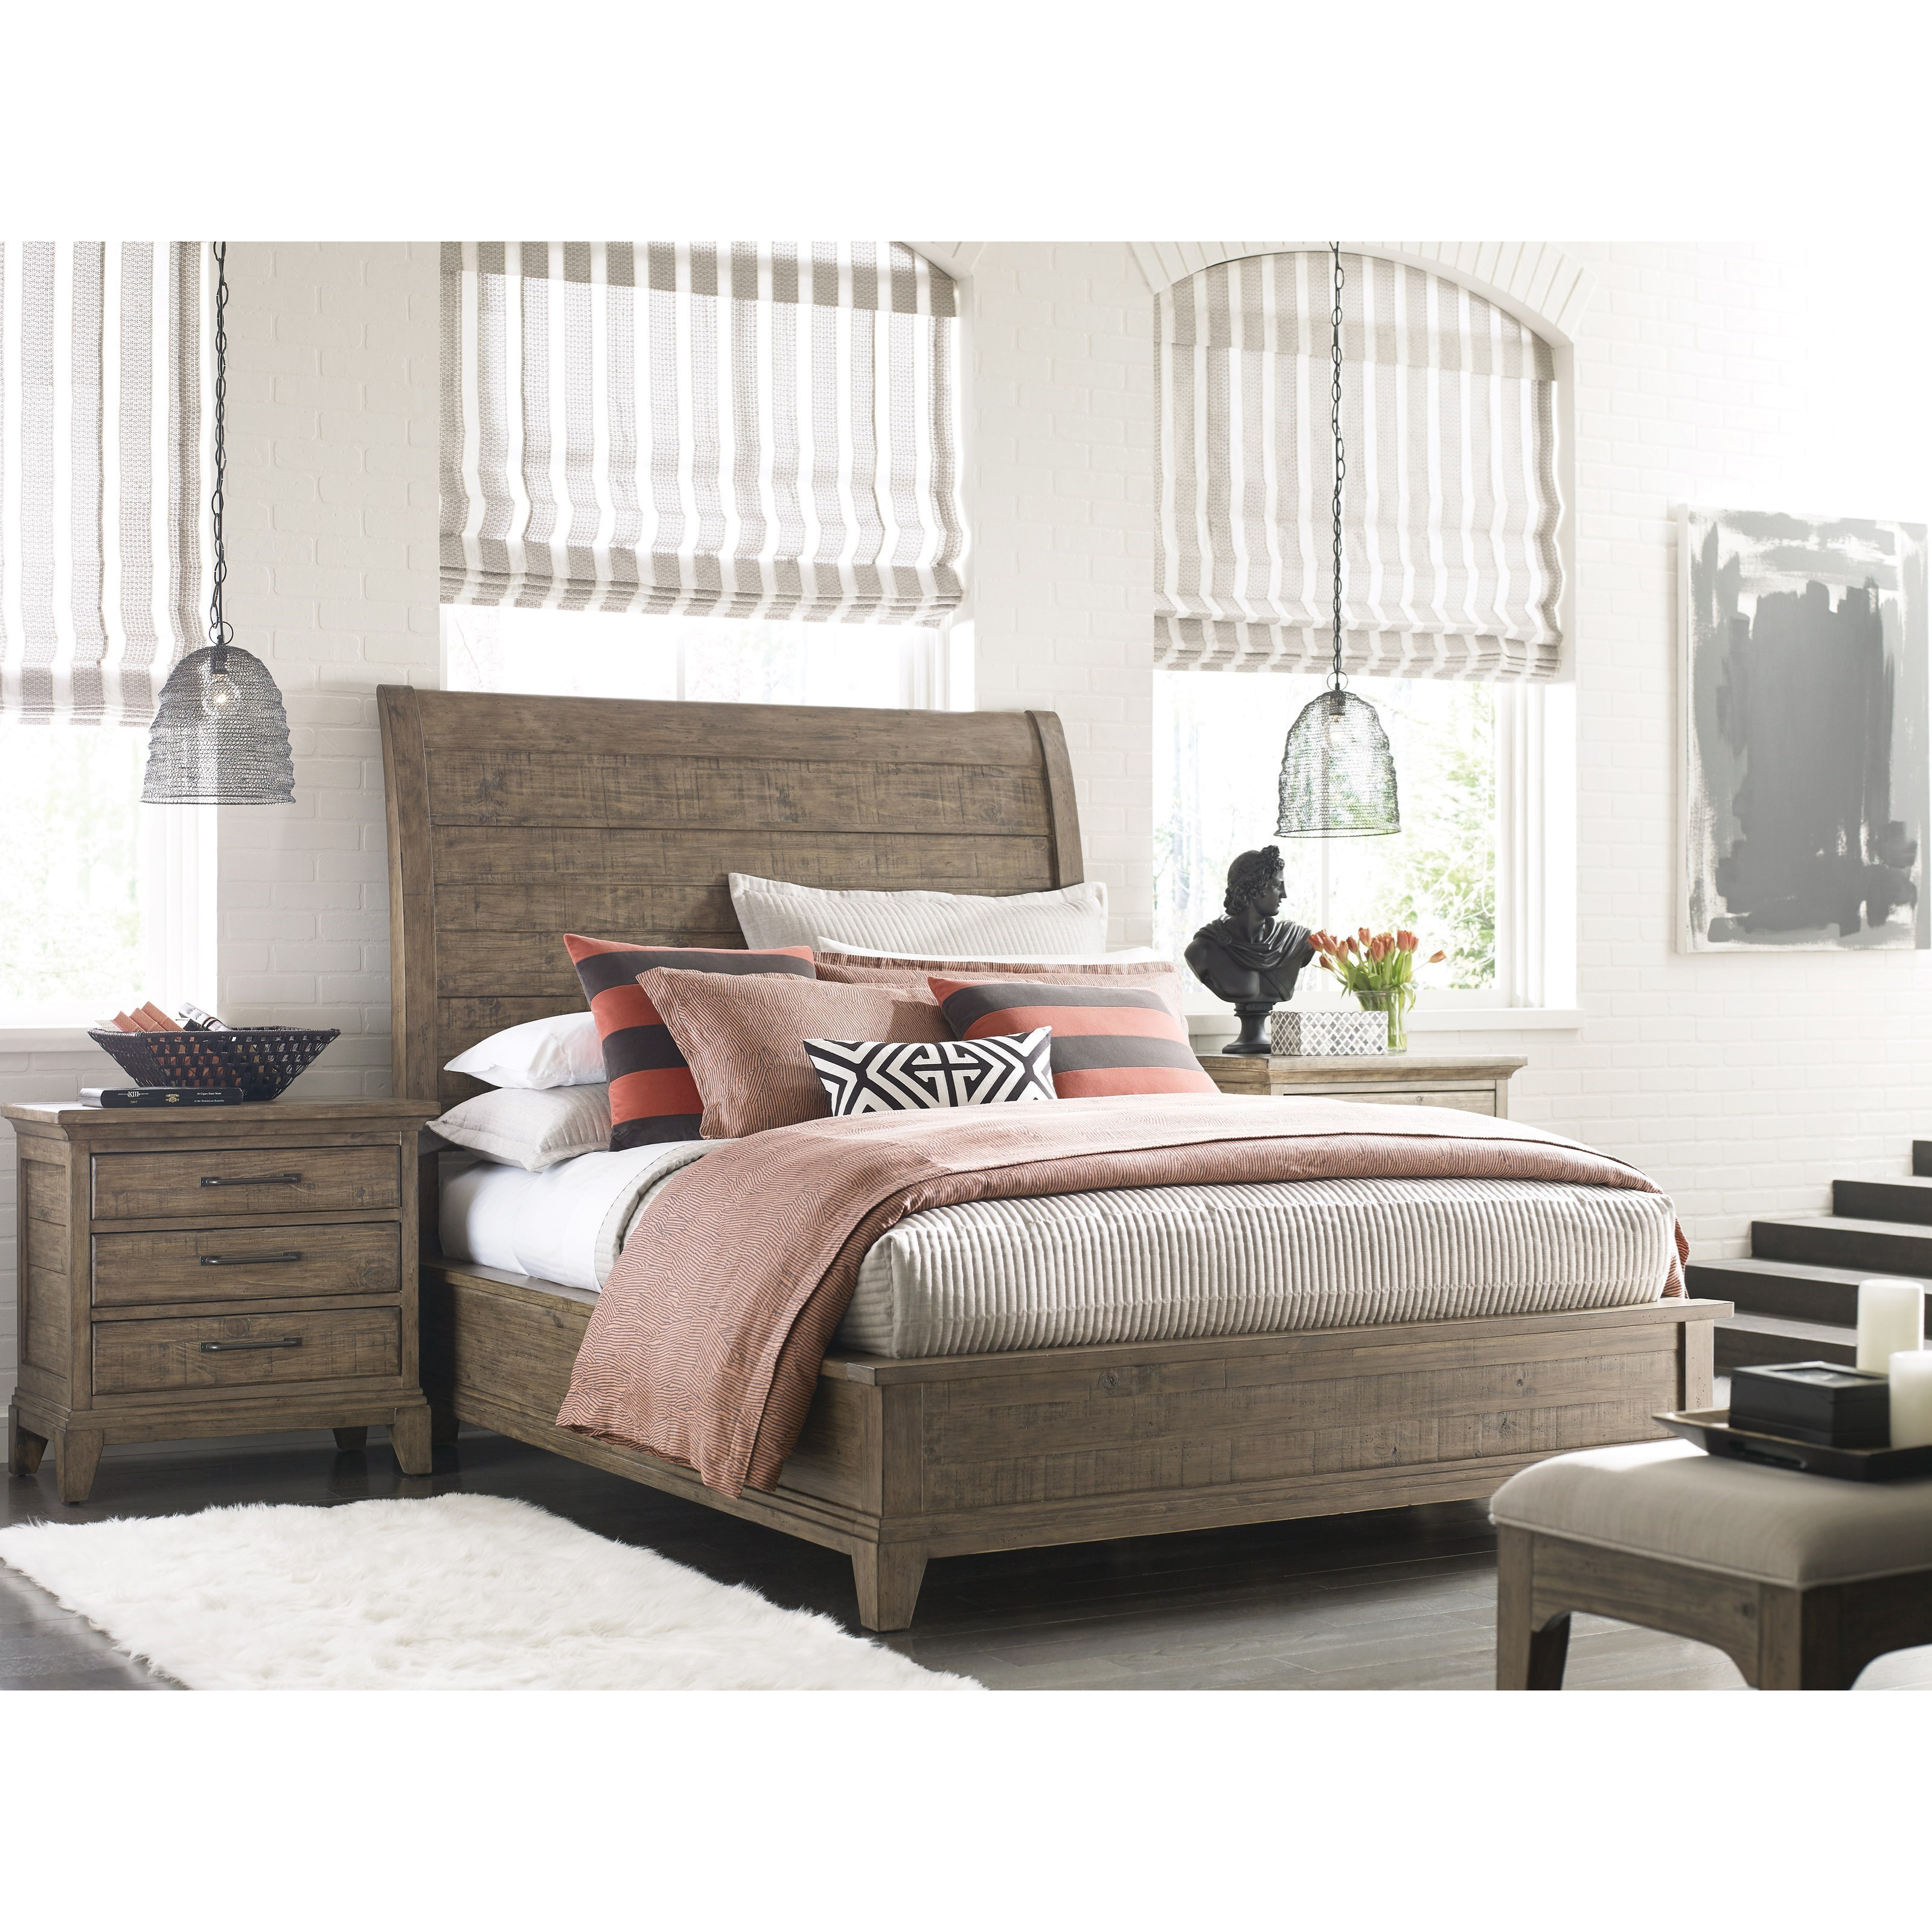 Kincaid Furniture Plank Road California King Bedroom Group Item Number 706 Ck